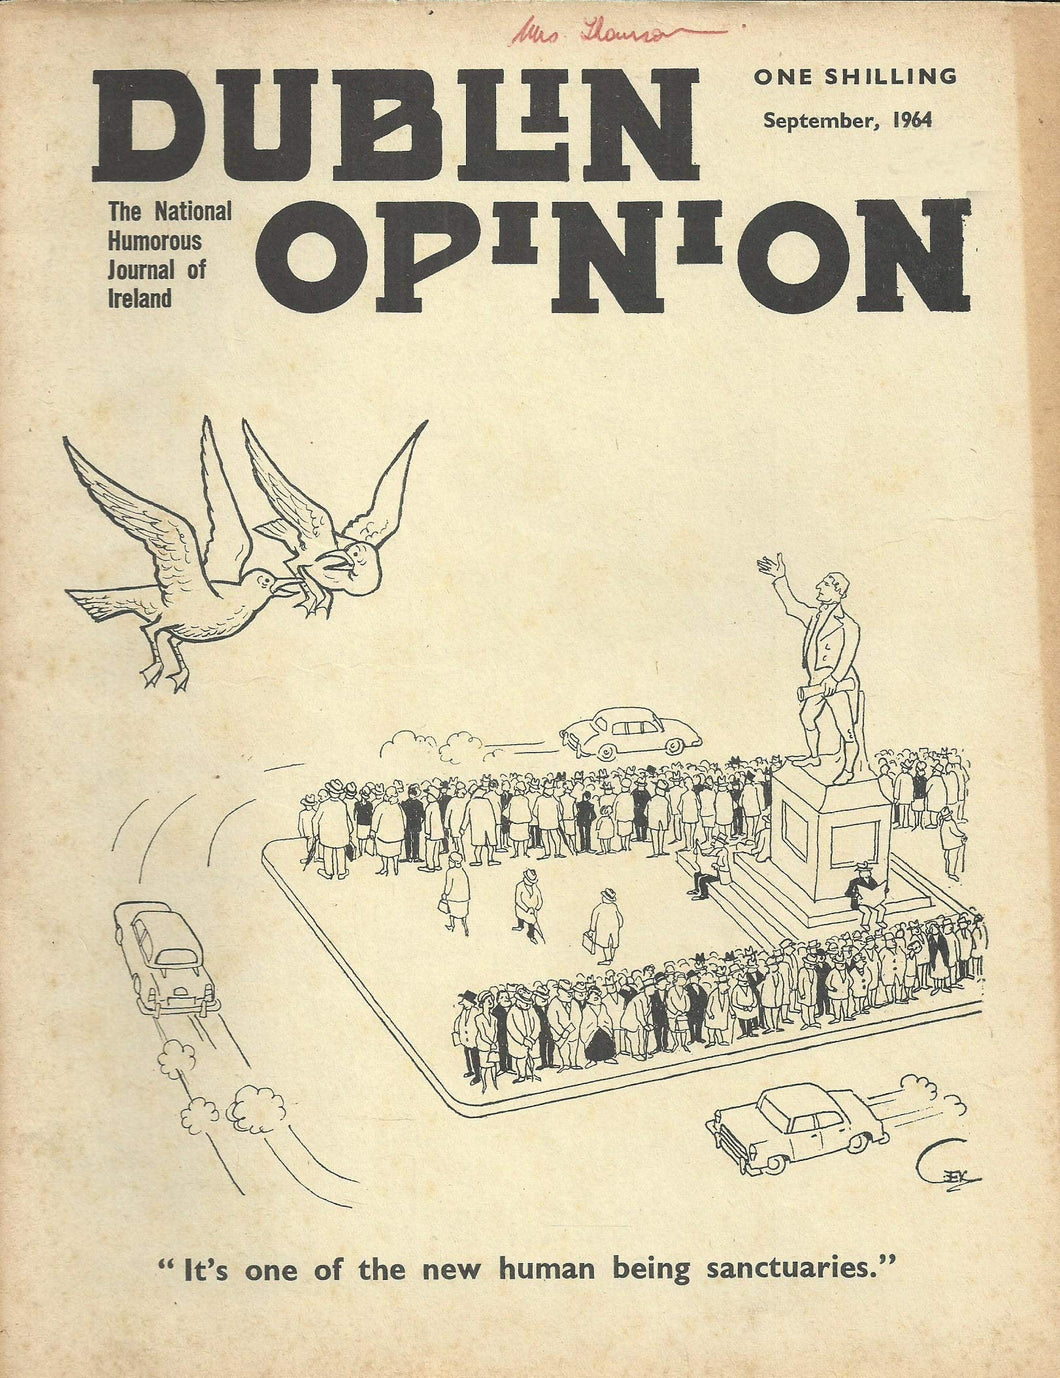 Dublin Opinion - September, 1964 - The National Humorous Journal of Ireland